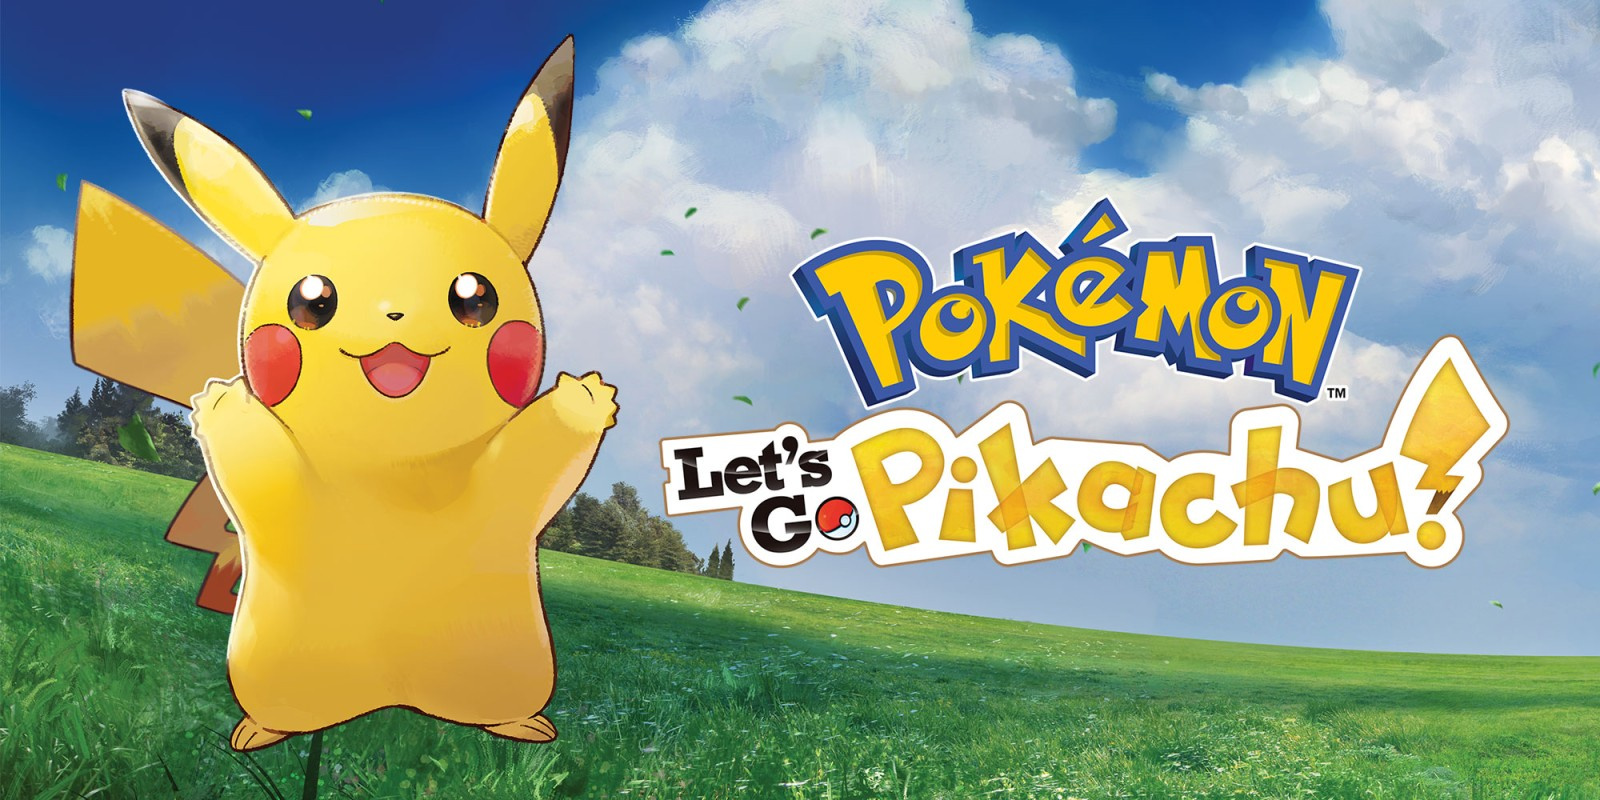 733e2f56d4e ... have finally revealed more of their plans for the future of Pokémon at  the Pokémon 2018 Video Game Press Conference, and it looks very bright  indeed.